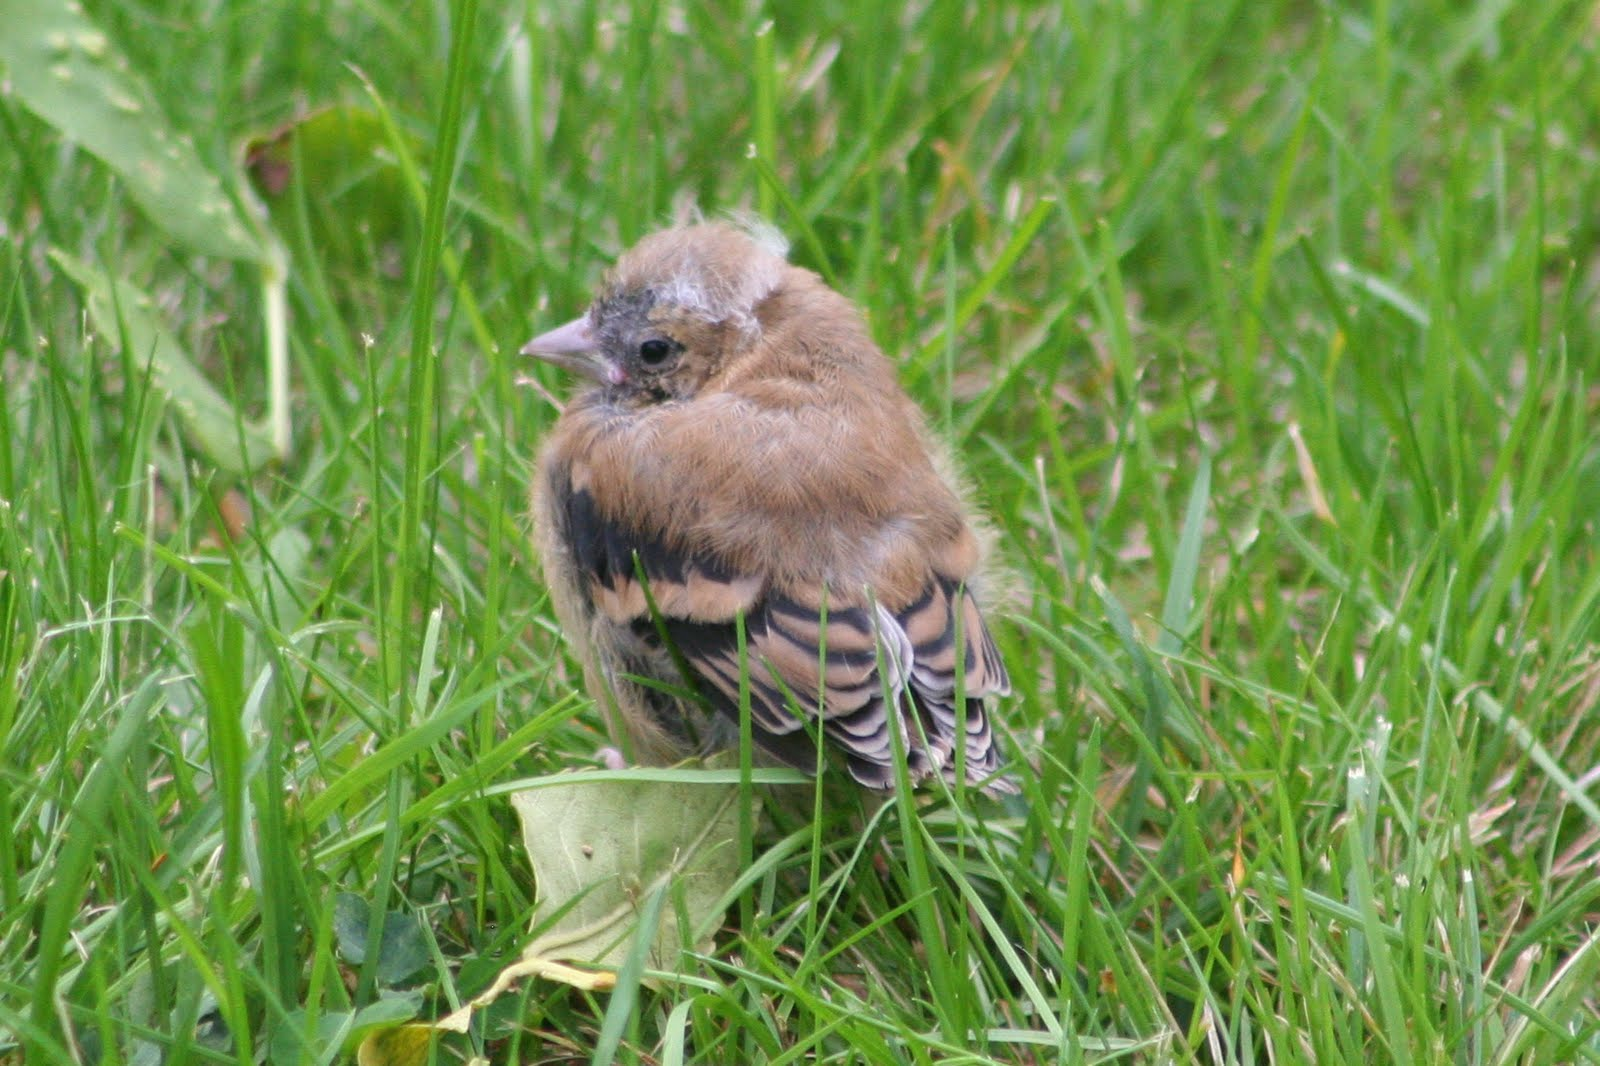 American goldfinch baby - photo#15